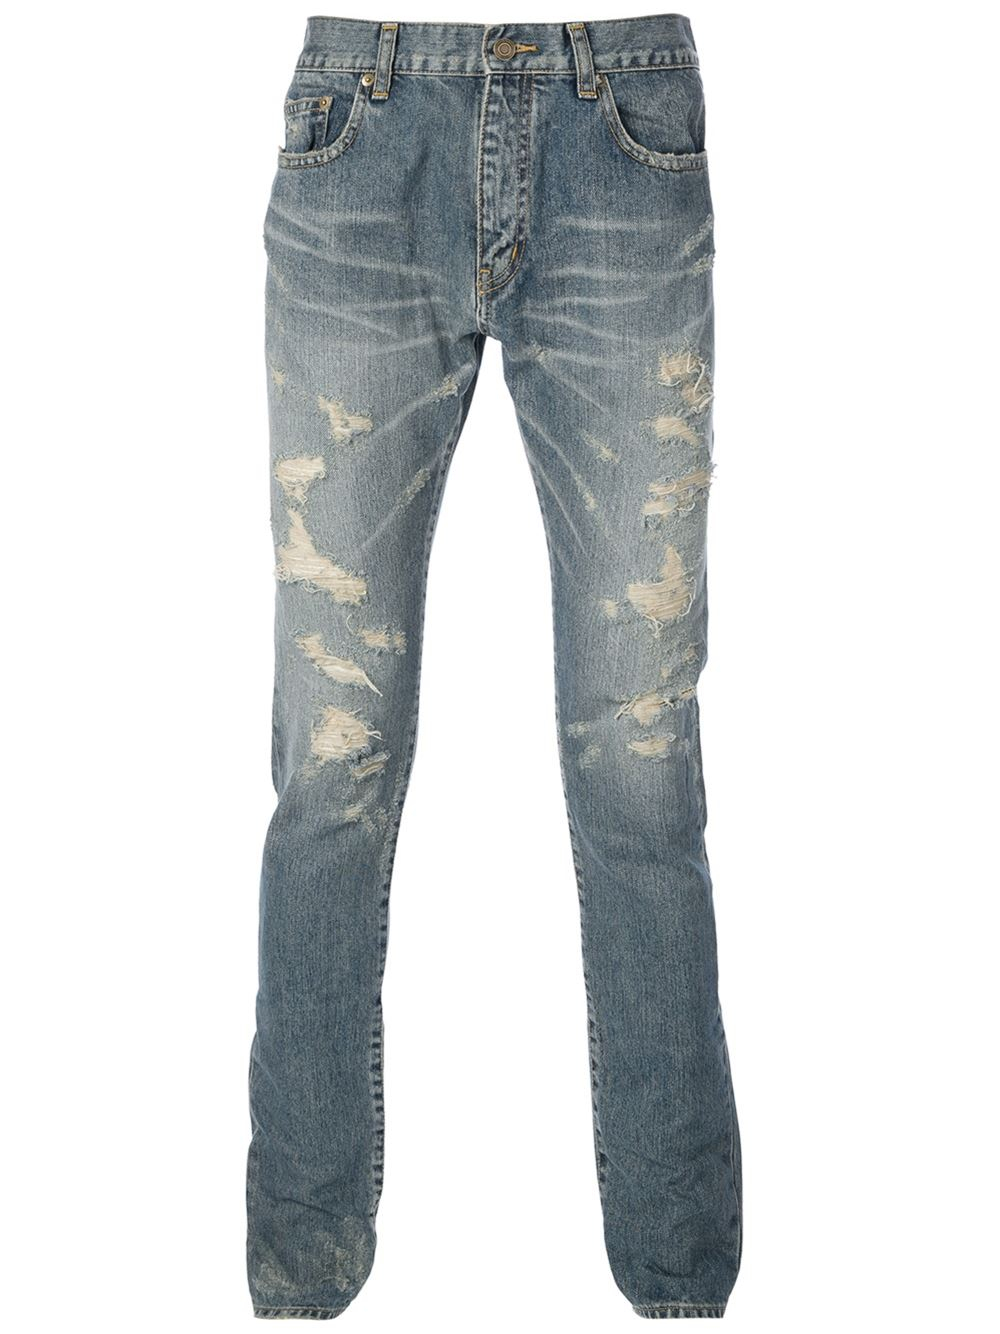 saint-laurent-blue-little-crash-used-distressed-skinny-jean-product-1-12872240-0-670068742-normal.jpg